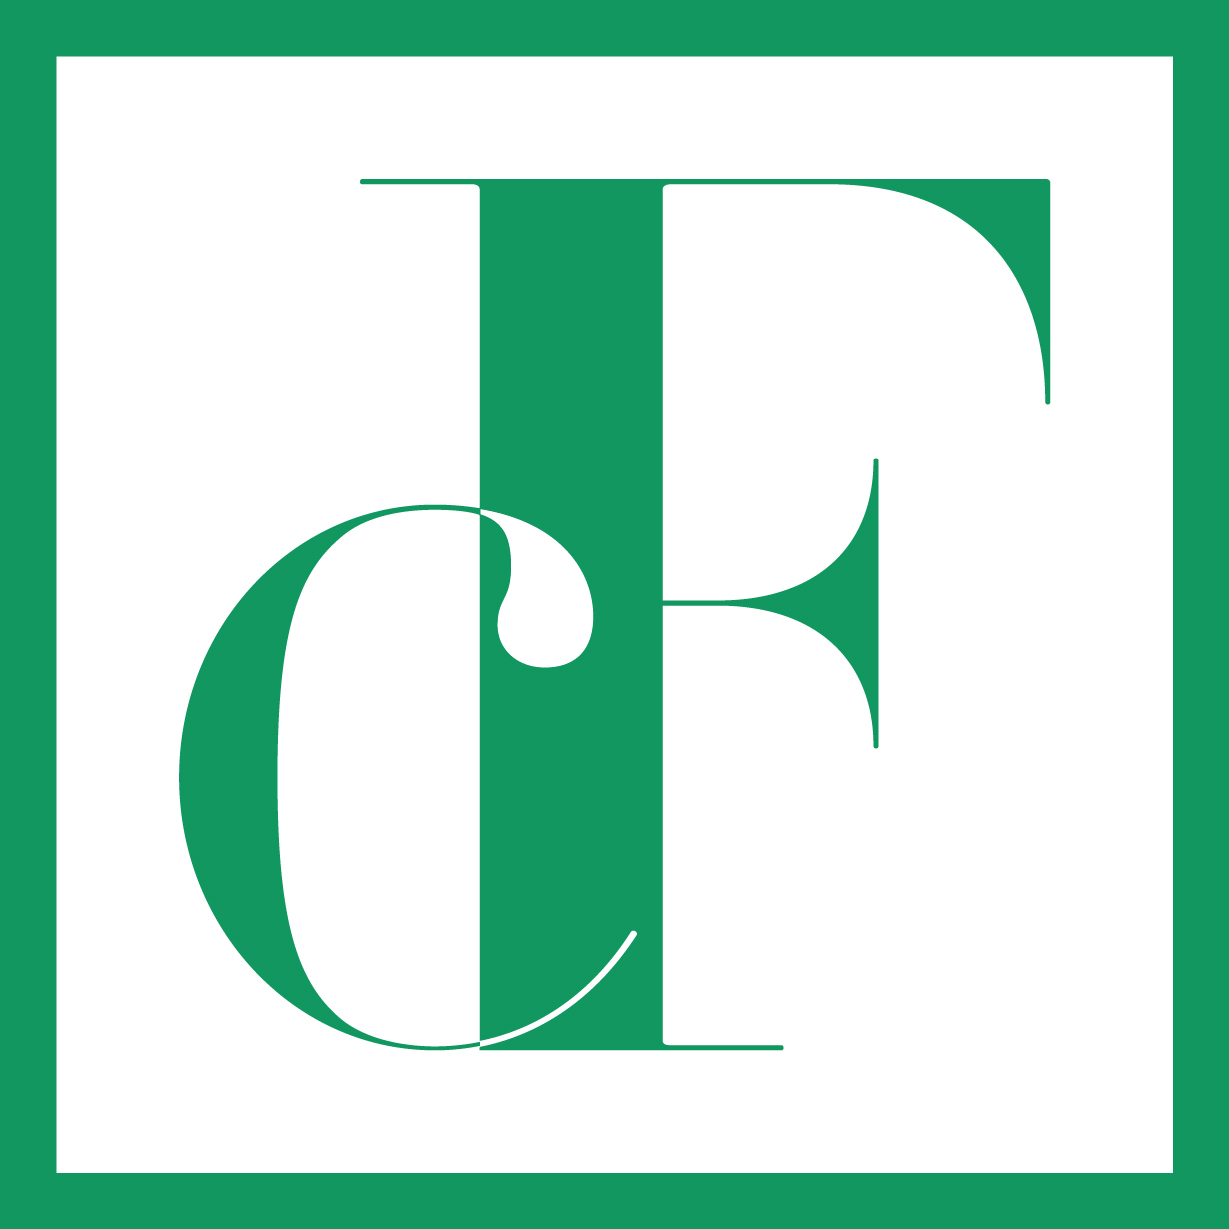 CDF CONSULTING Boutique E-Commerce Advisors. Effective Data-Driven Strategies.